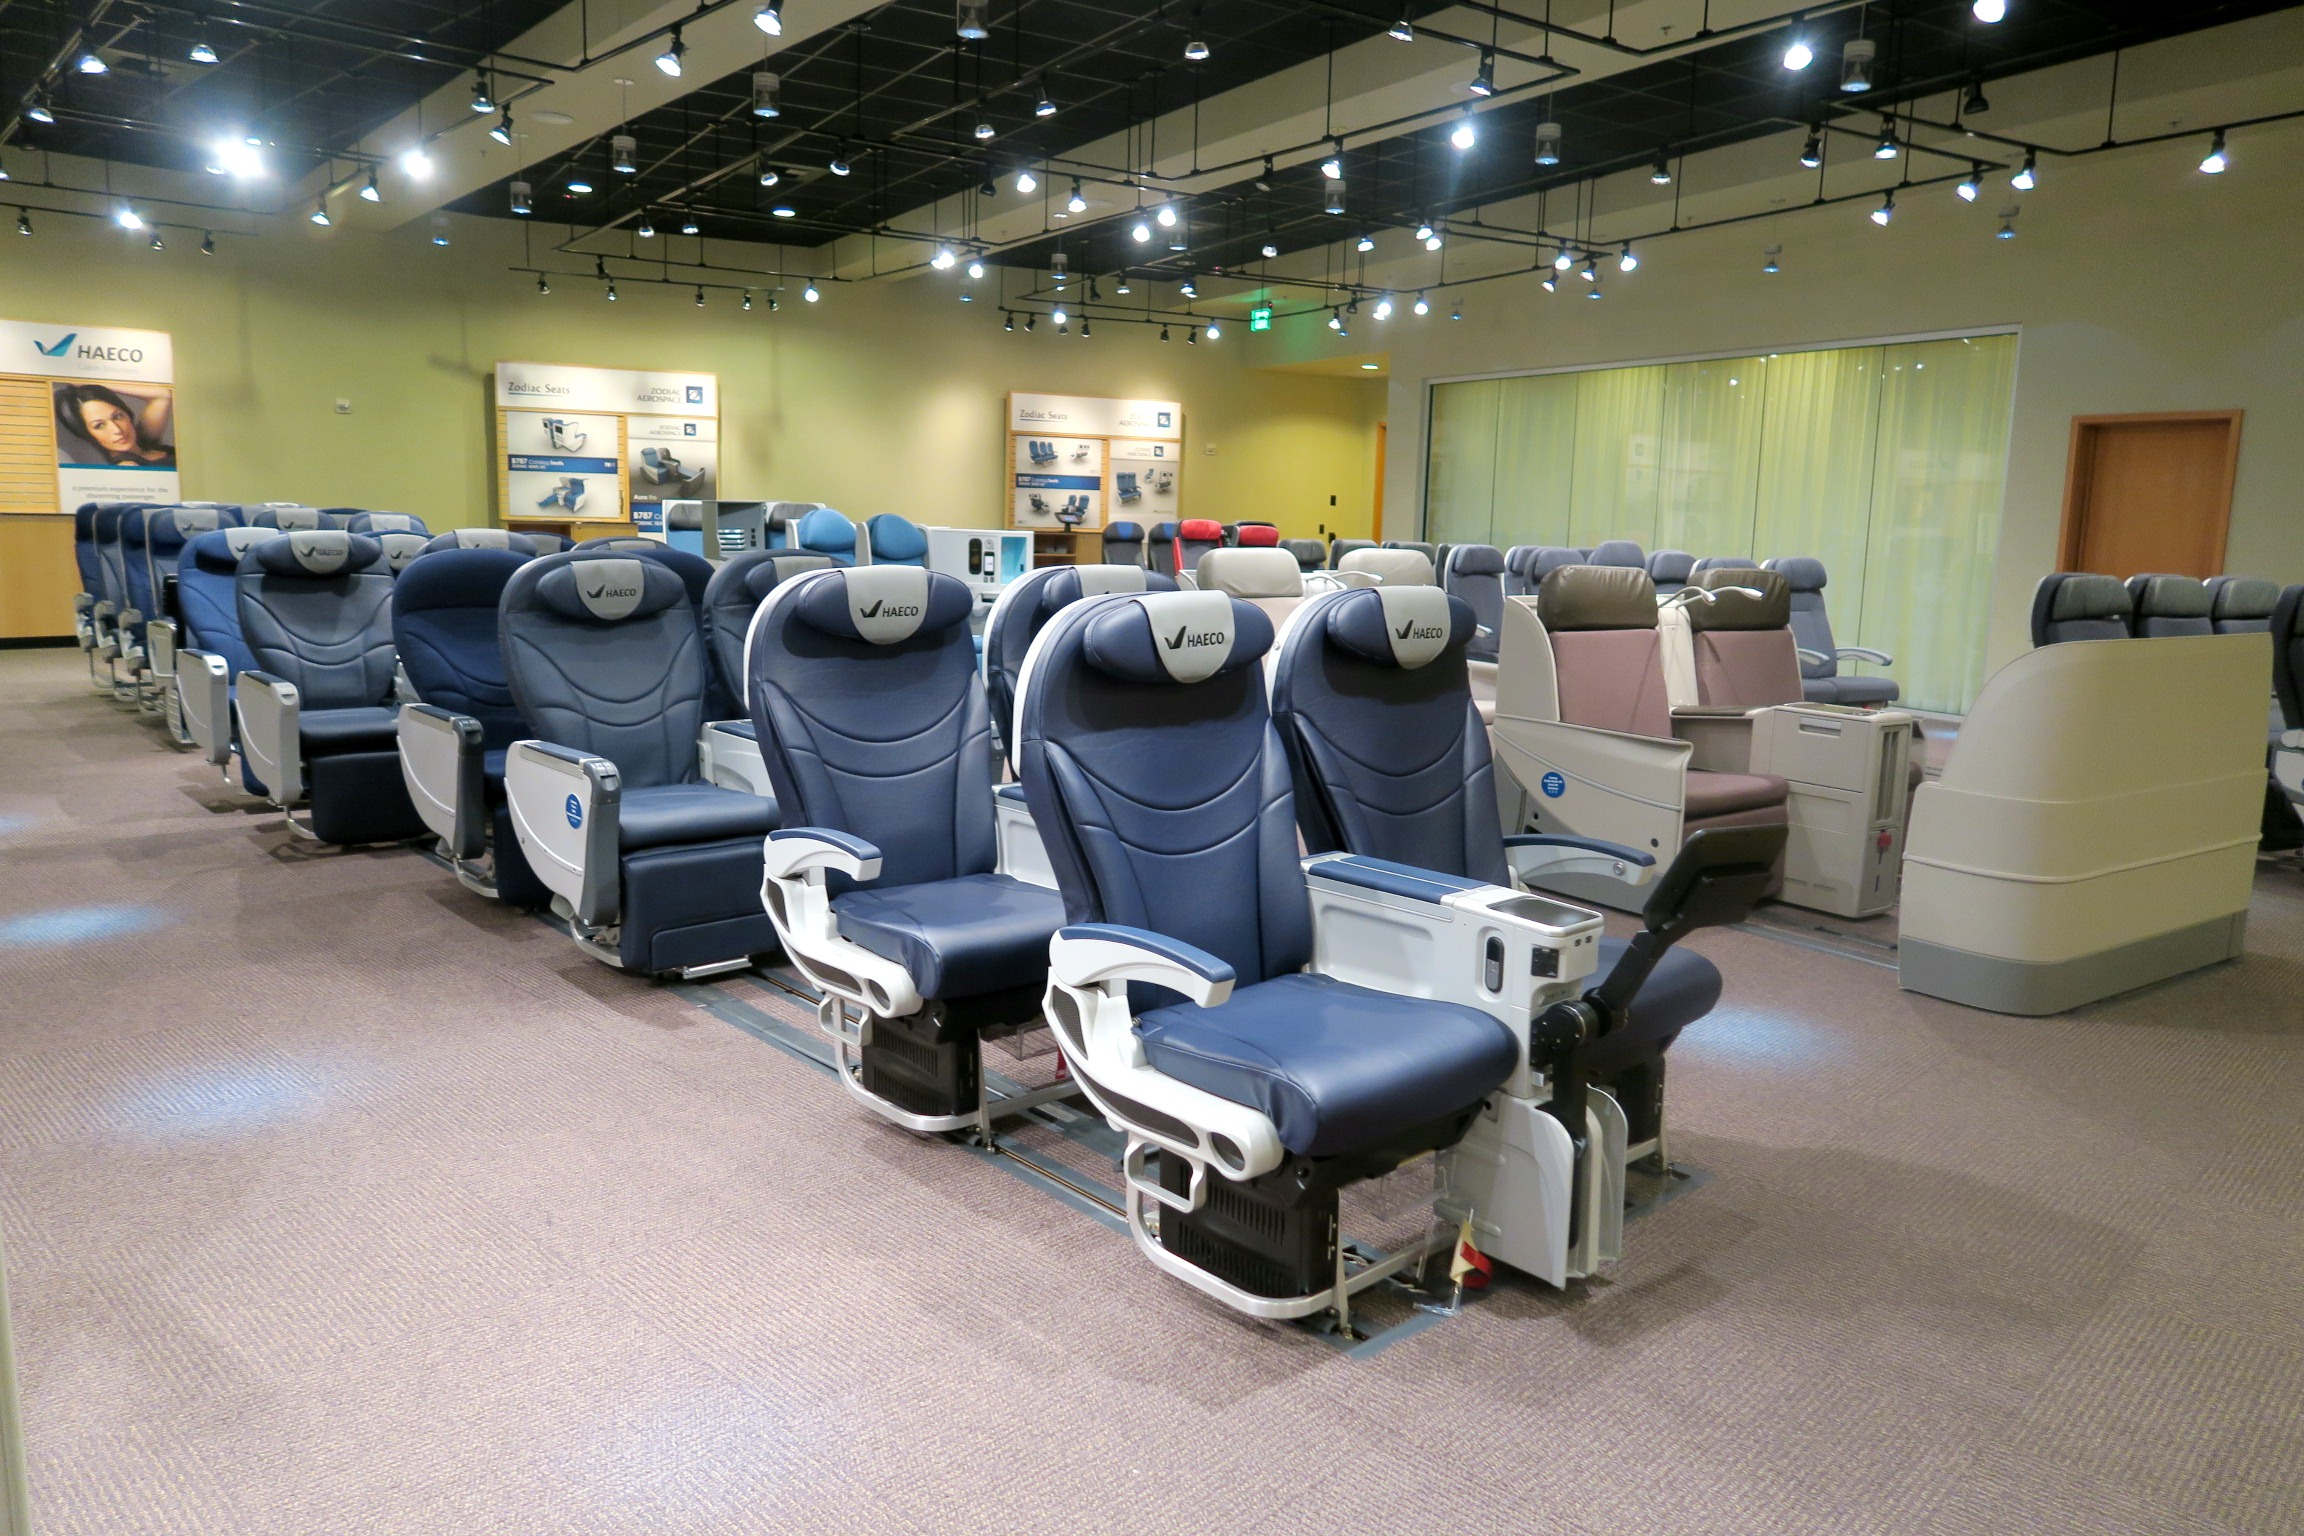 Boeing Dreamliner Gallery- Seats Prototype- Cathay Pacific-Boeing Delivery Flight